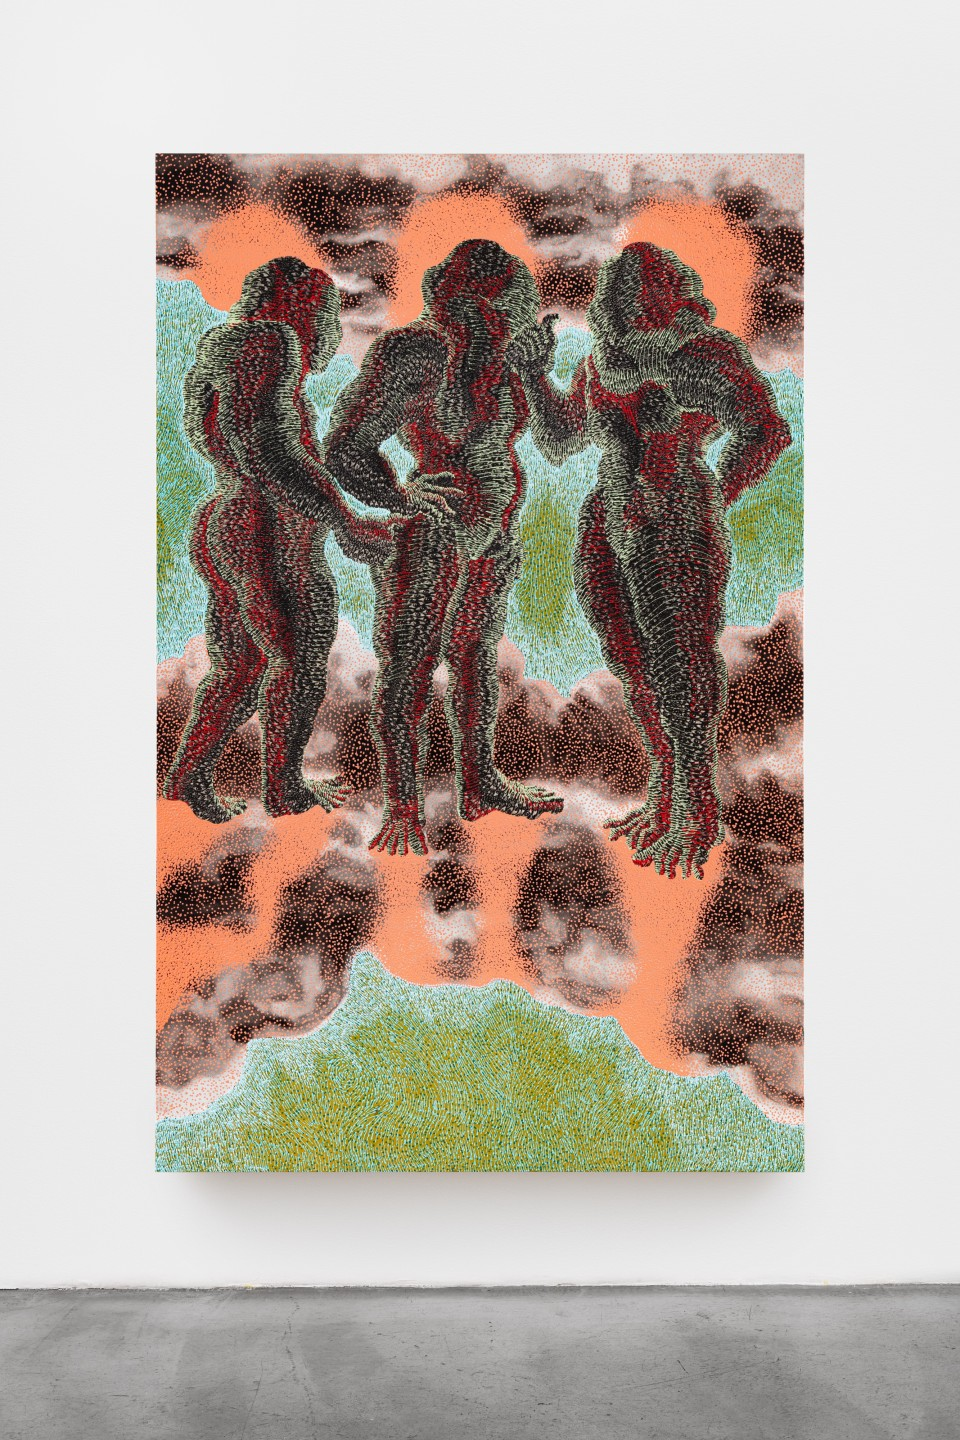 "Artwork: Didier William  Twa Manman, twa kouwon, 2020 (""Three Mothers, three crowns"")  signed and dated verso  acrylic, ink, oil and wood carving on panel  102 x 65 inches (259.1 x 165.1 cm)"